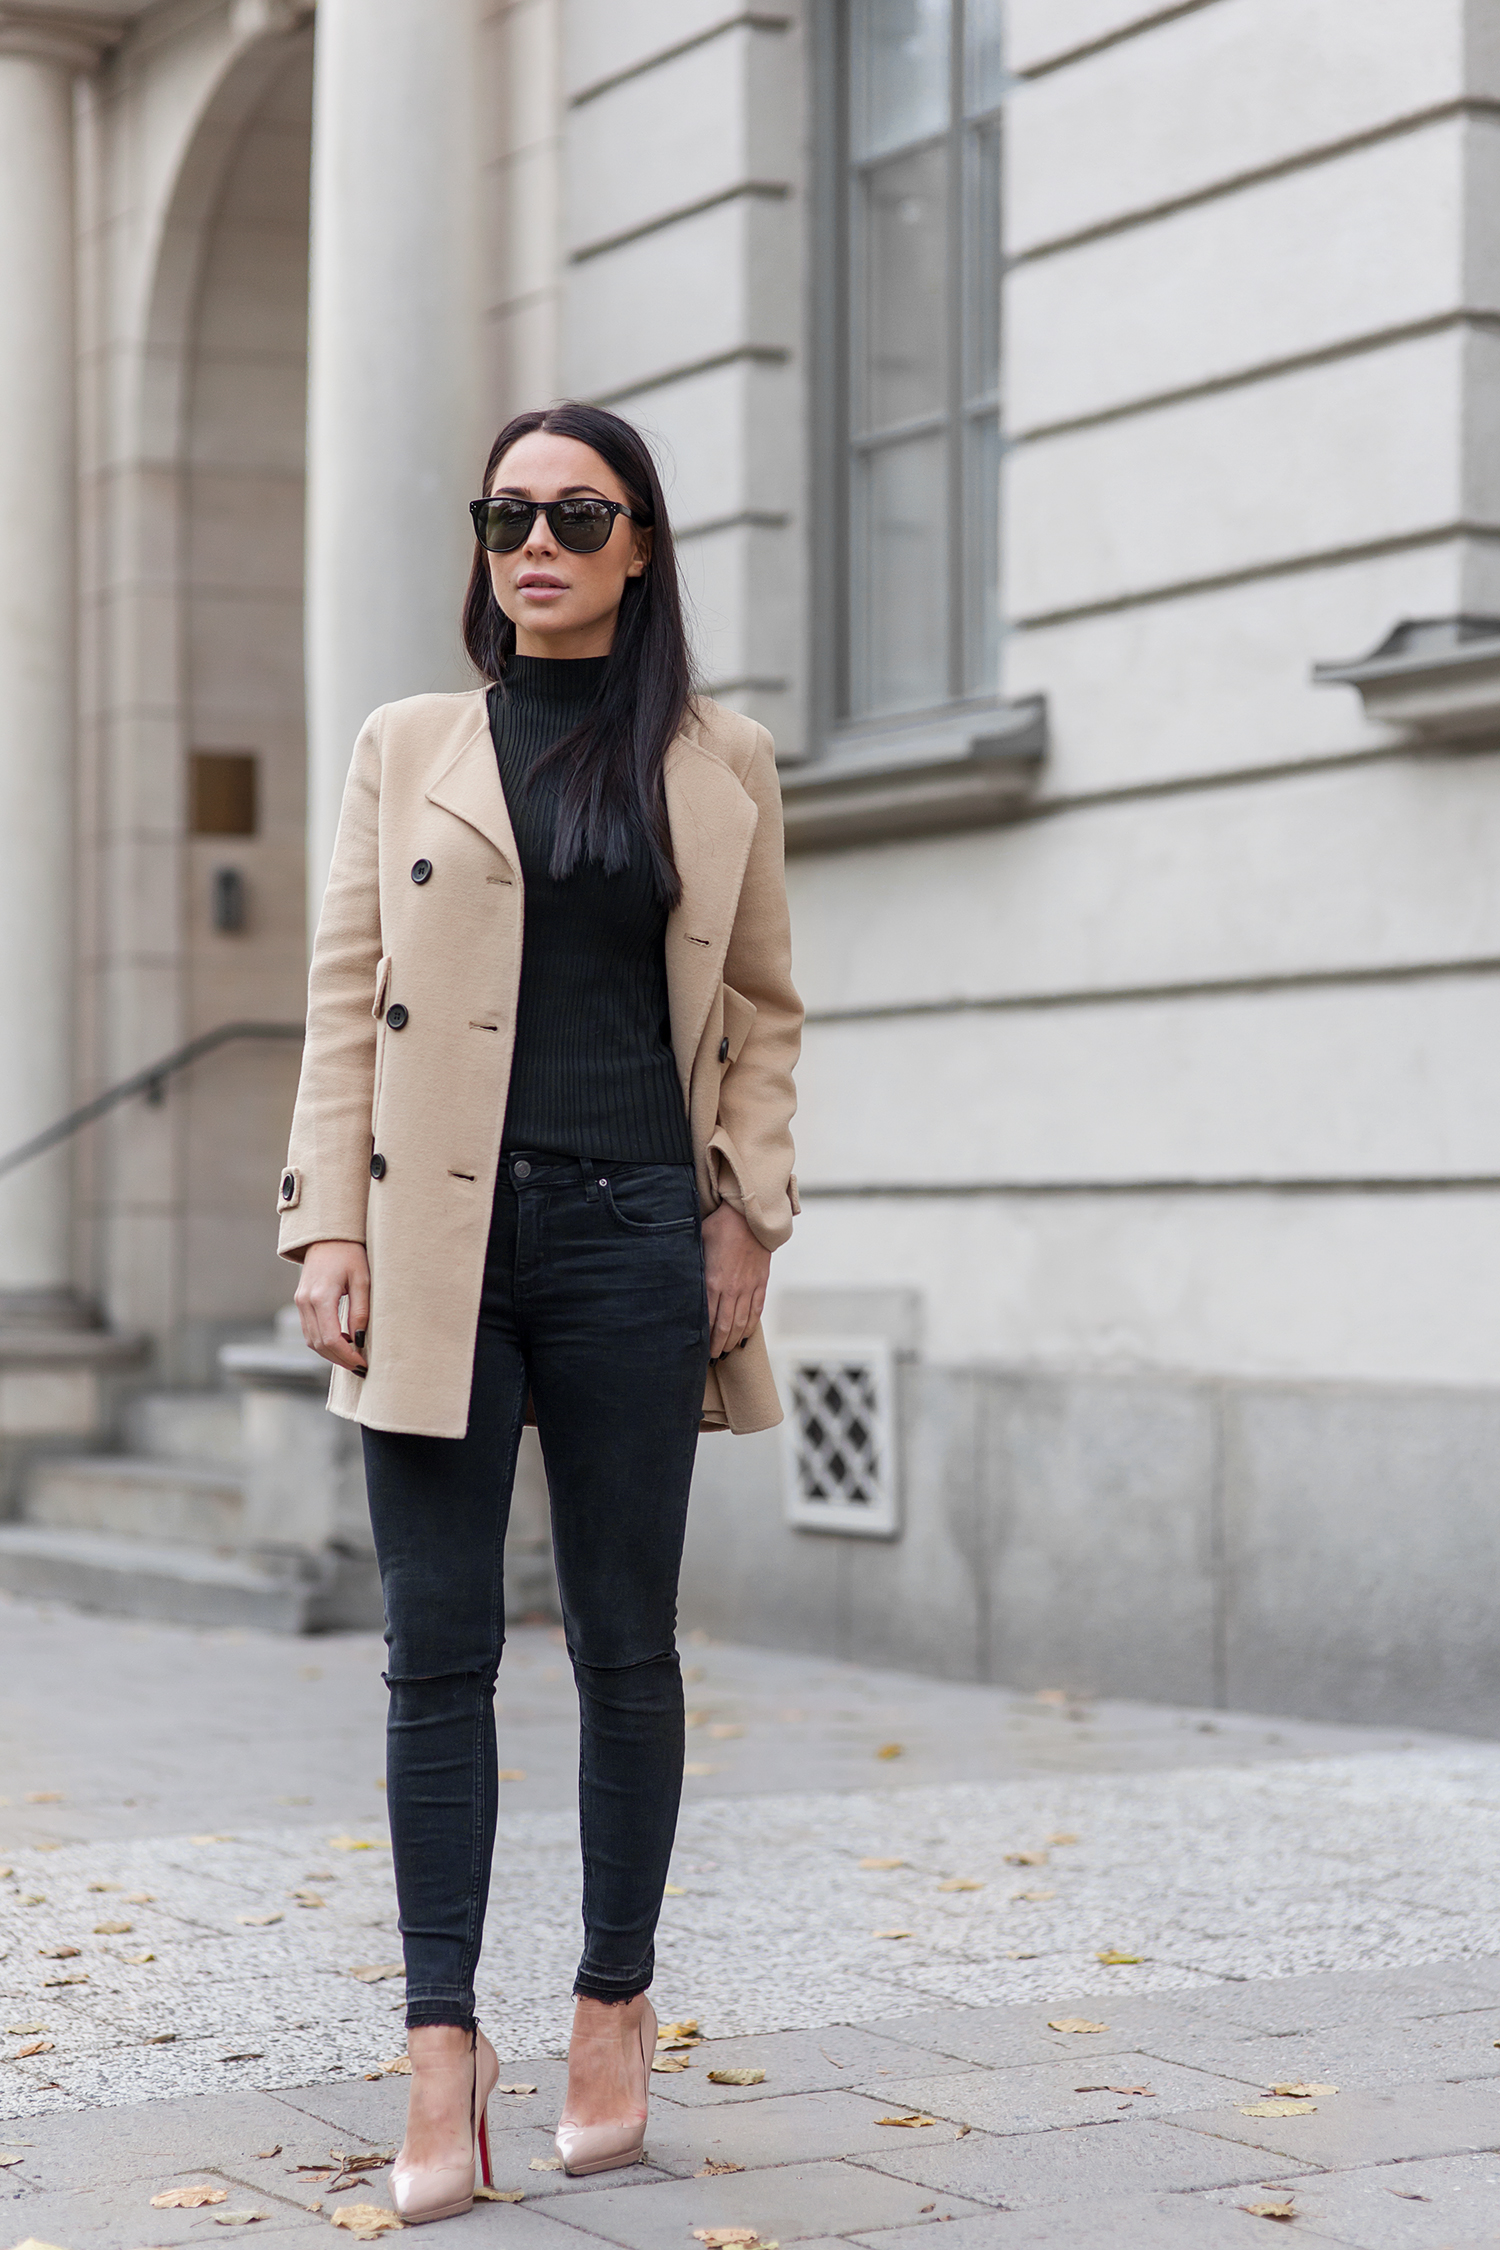 Black and camel outfits are in the height of fashion at the moment. Johanna Olsson is wearing the trend through black jeans, a black polo neck tee, and a classic camel coat. We recommend this look for a casual style. Brands Not Specified.